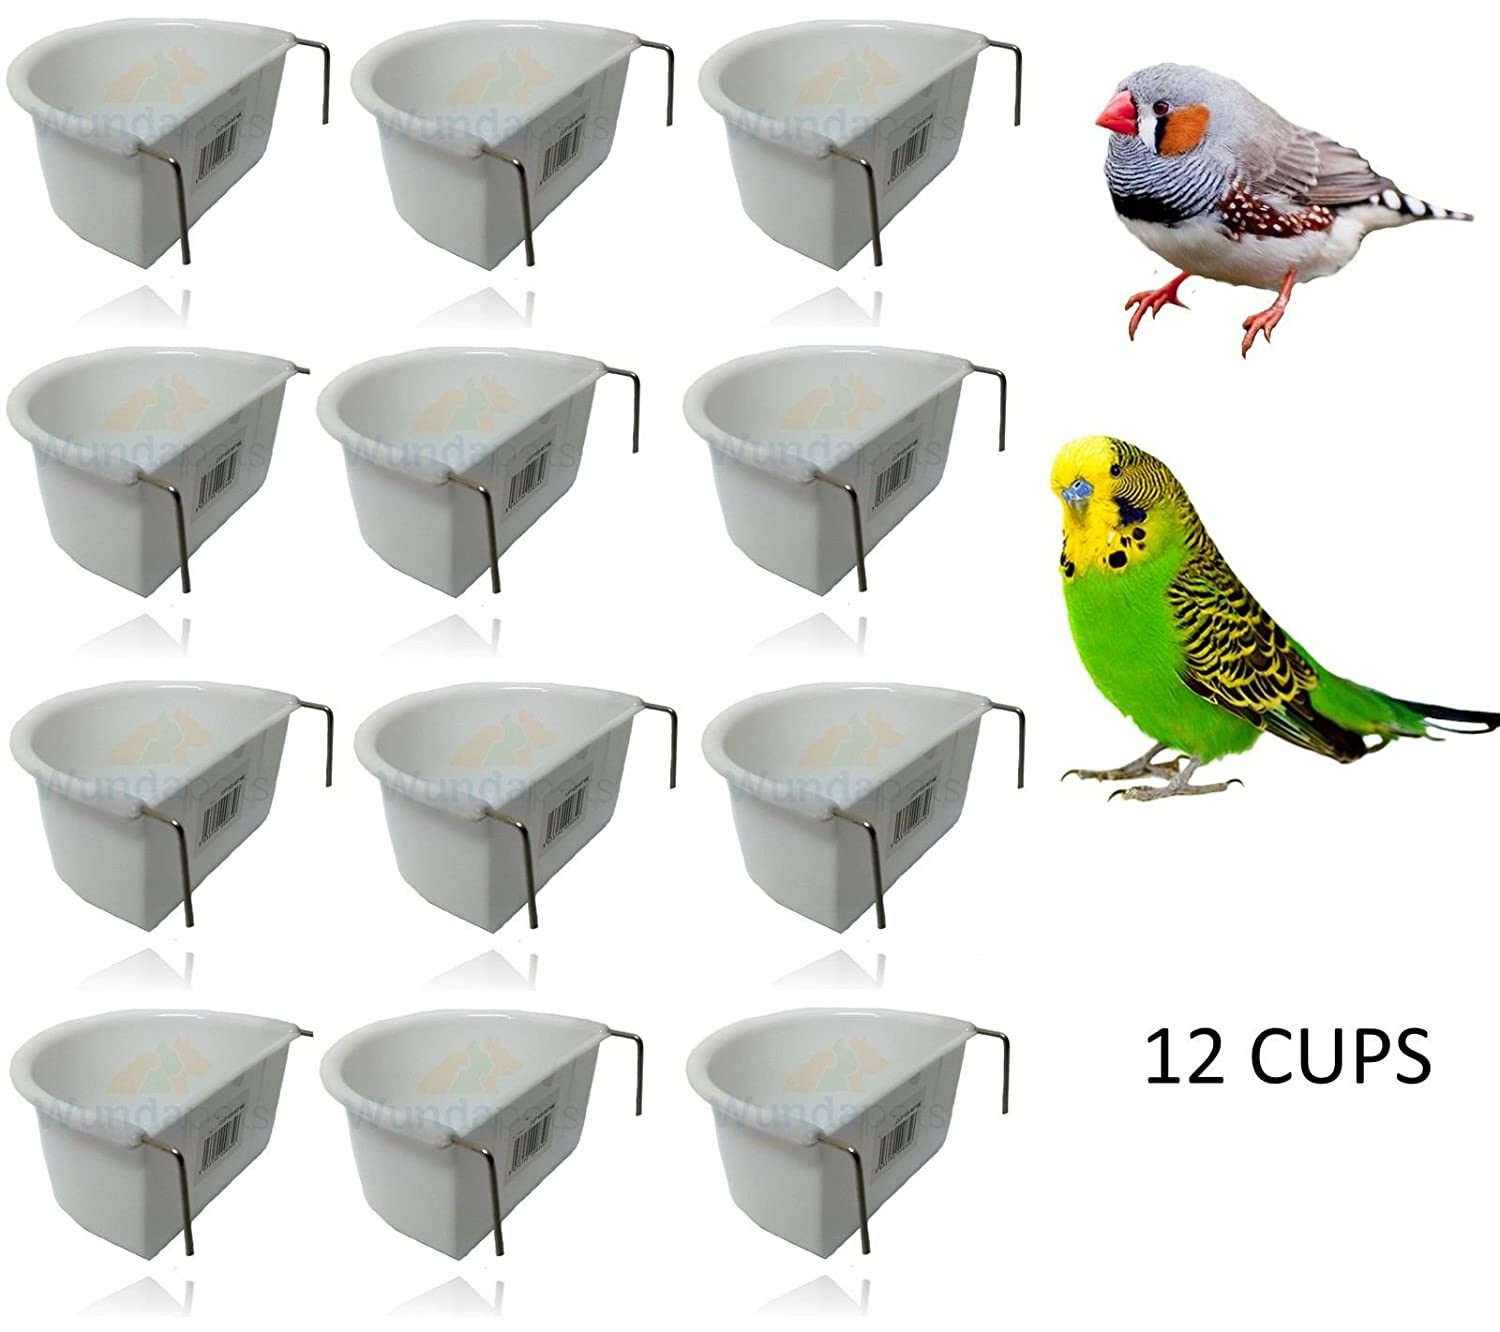 *NEW* 12 PACK WUNDAPETS 6.5 CM D-SHAPE PLASTIC BIRD BUDGIE PARROT CAGE HANG FEEDER COOP CUP